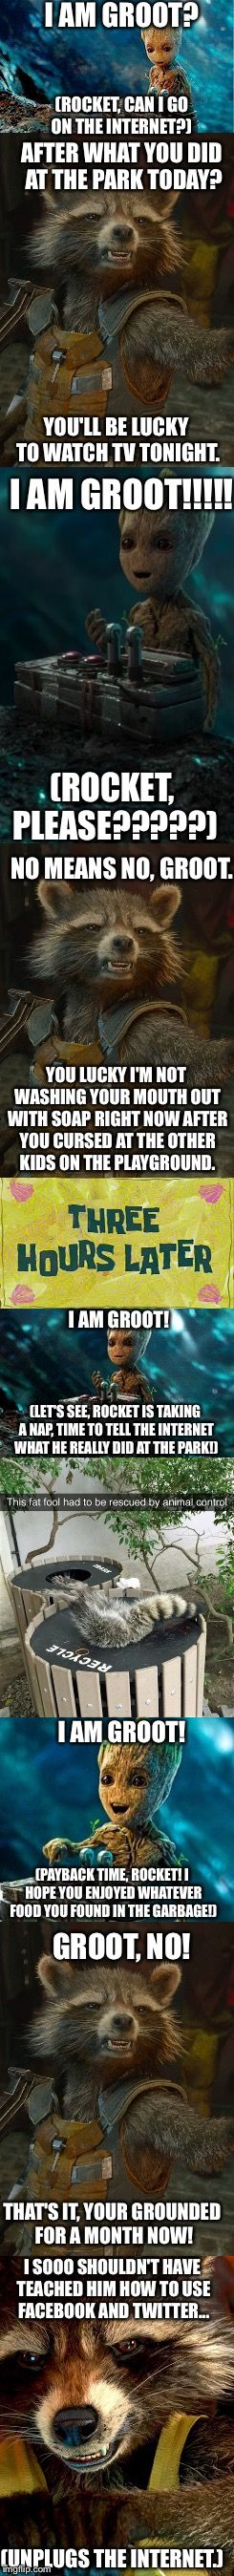 Groot's Internet Adventures